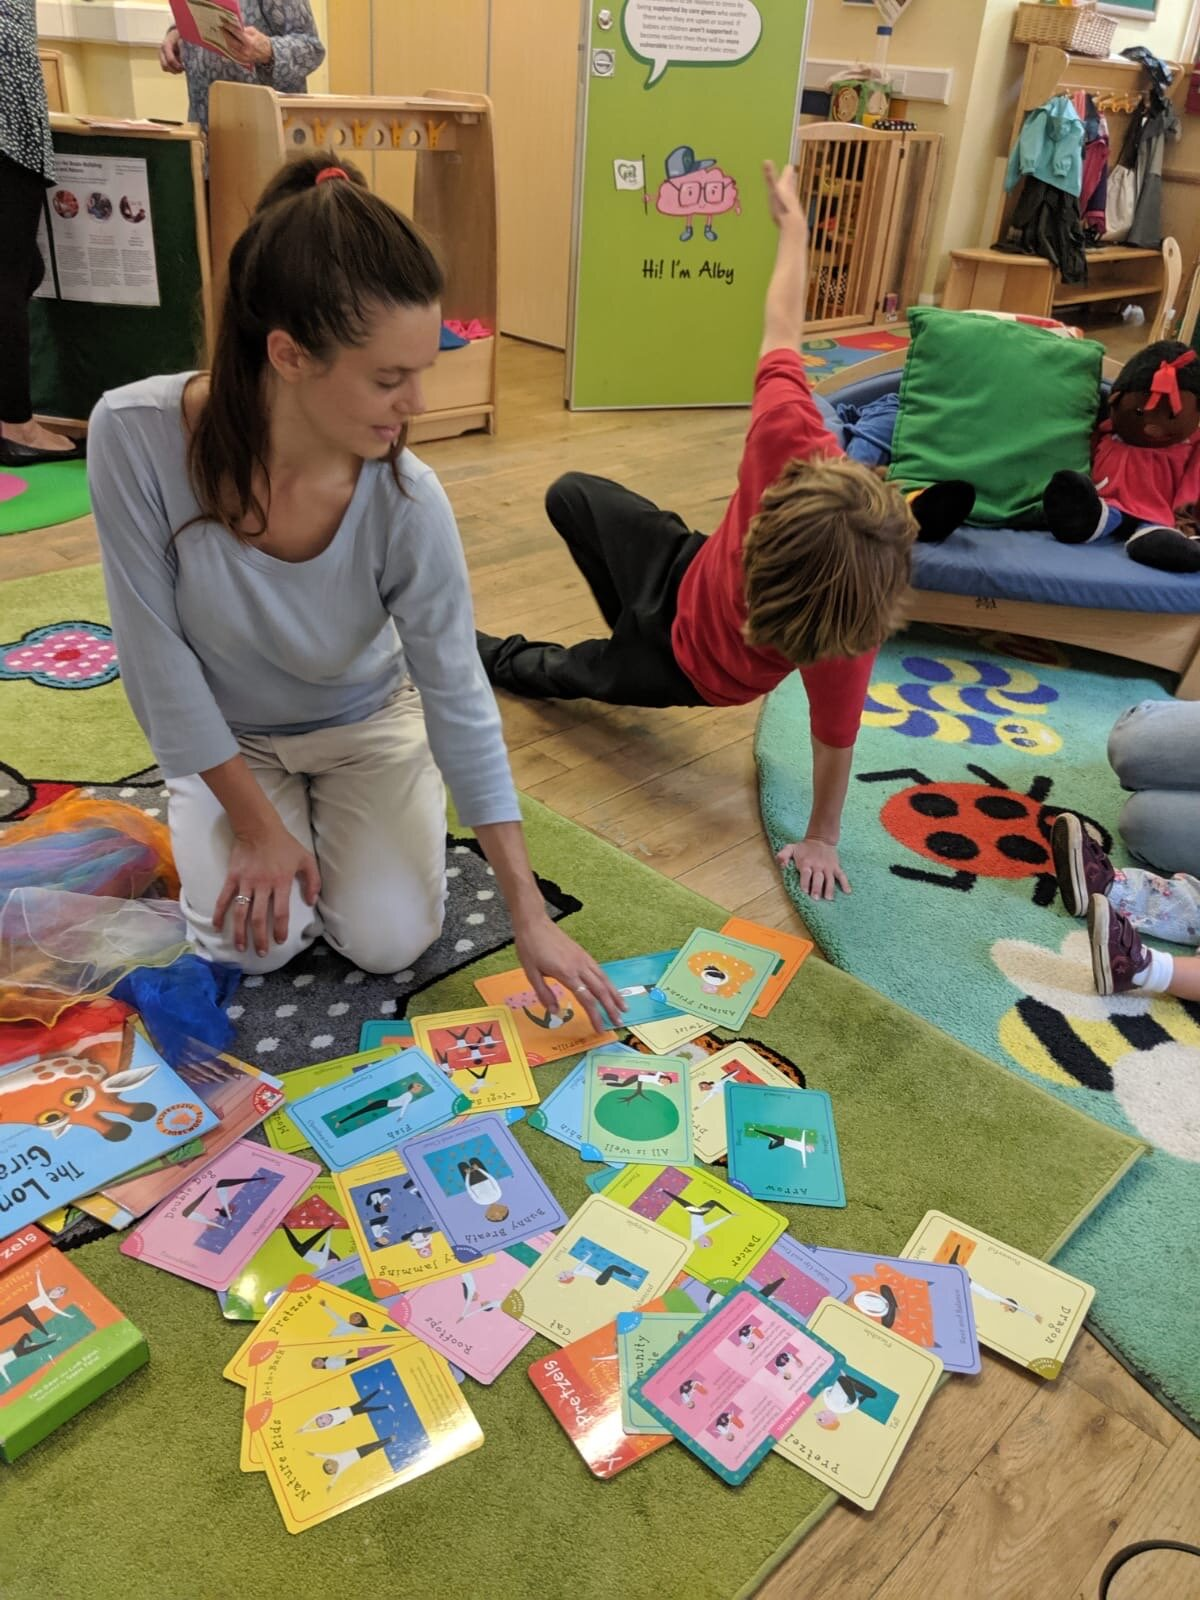 HERE Om:Pop team member Aoife Baigent helps lead a session at Melcombe Children's Centre, Family Support